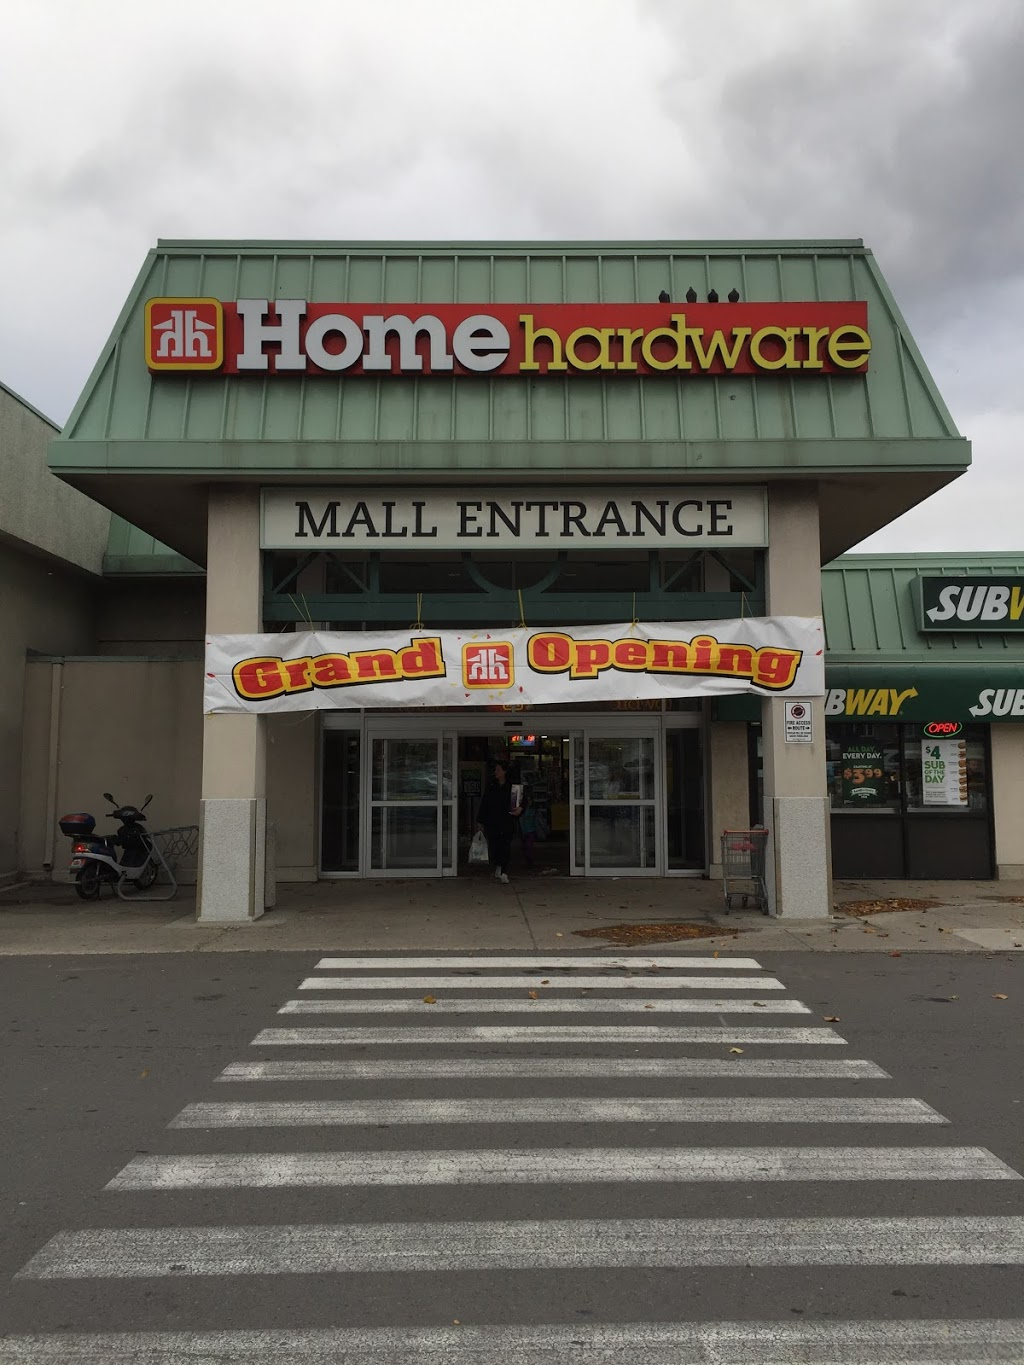 Westcliffe Home Hardware | home goods store | 632 Mohawk Rd W, Hamilton, ON L9C 1X6, Canada | 9053886268 OR +1 905-388-6268